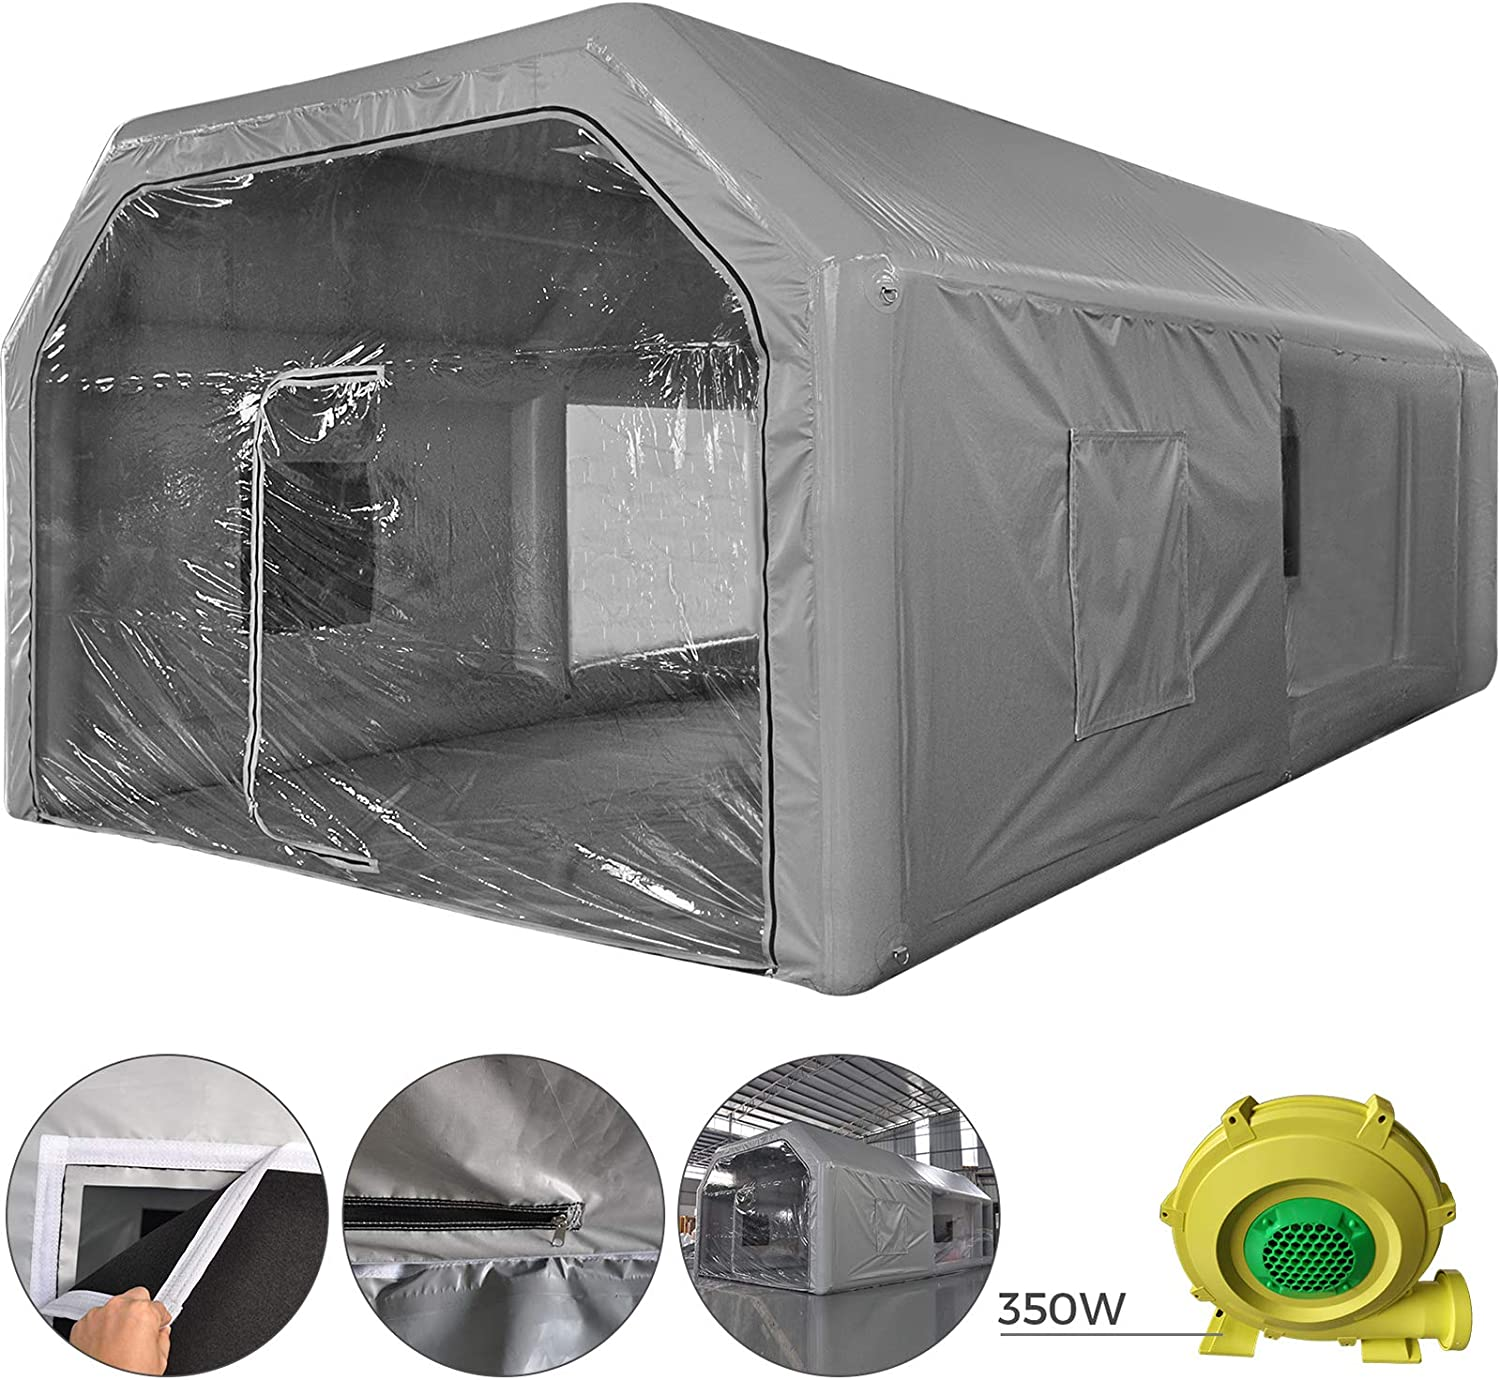 Car Paint Booth Tent PVC with Blower Inflatable Spray Booth with Air Filtration System for Car Polishing,Spray Paint Booth LOVSHARE Inflatable Paint Booth Water-Resistent 26x15x10ft